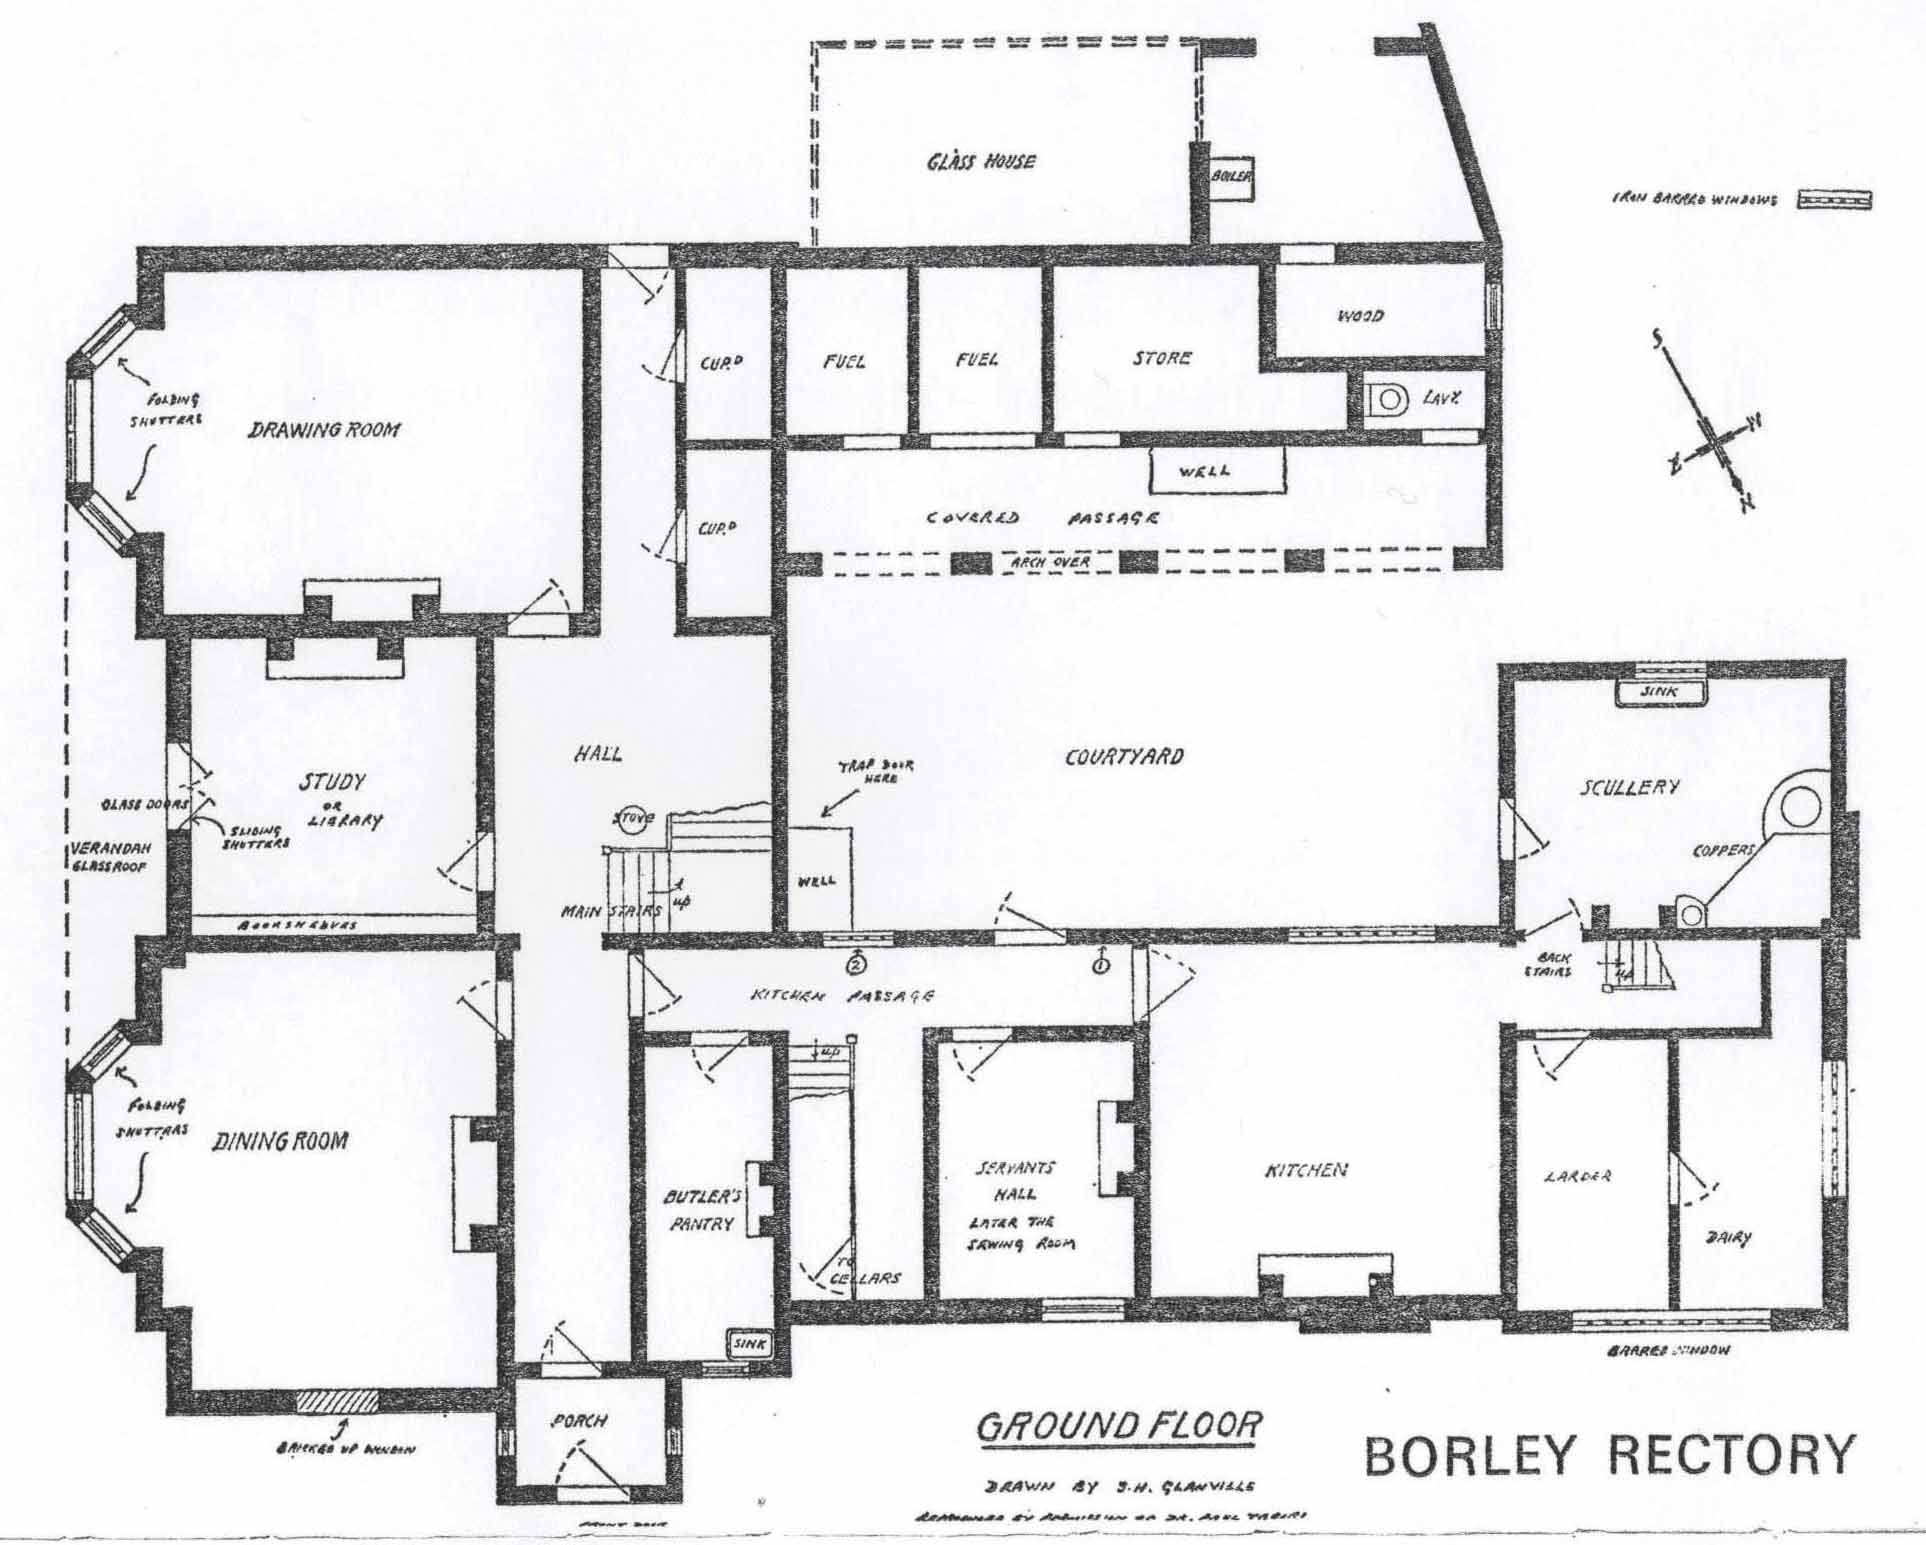 Pin By Ecoy Not A Business On Floorplans And Maps